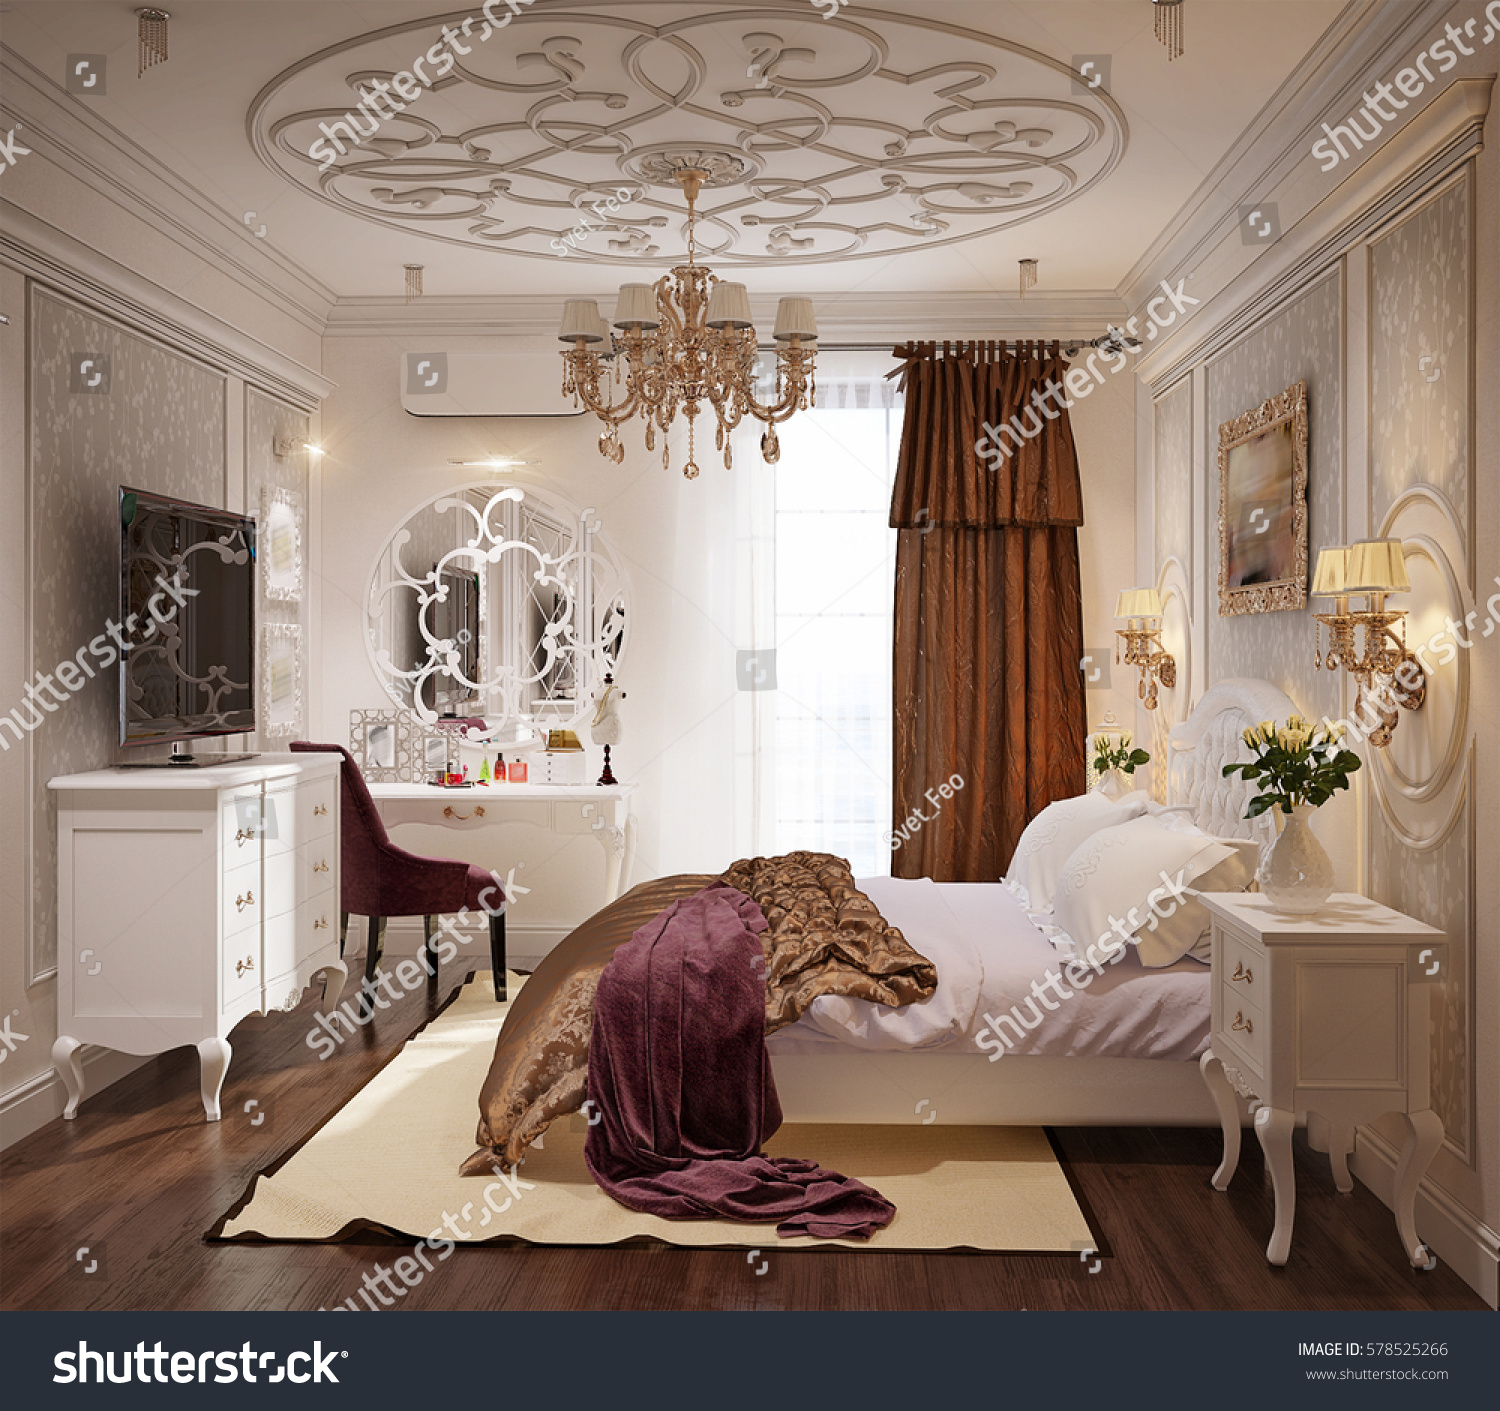 Fabulous Luxury Bedroom Interior Design In Classic Style With White Bed And  Silk Bedding D Rendering With D Classic Interior Design